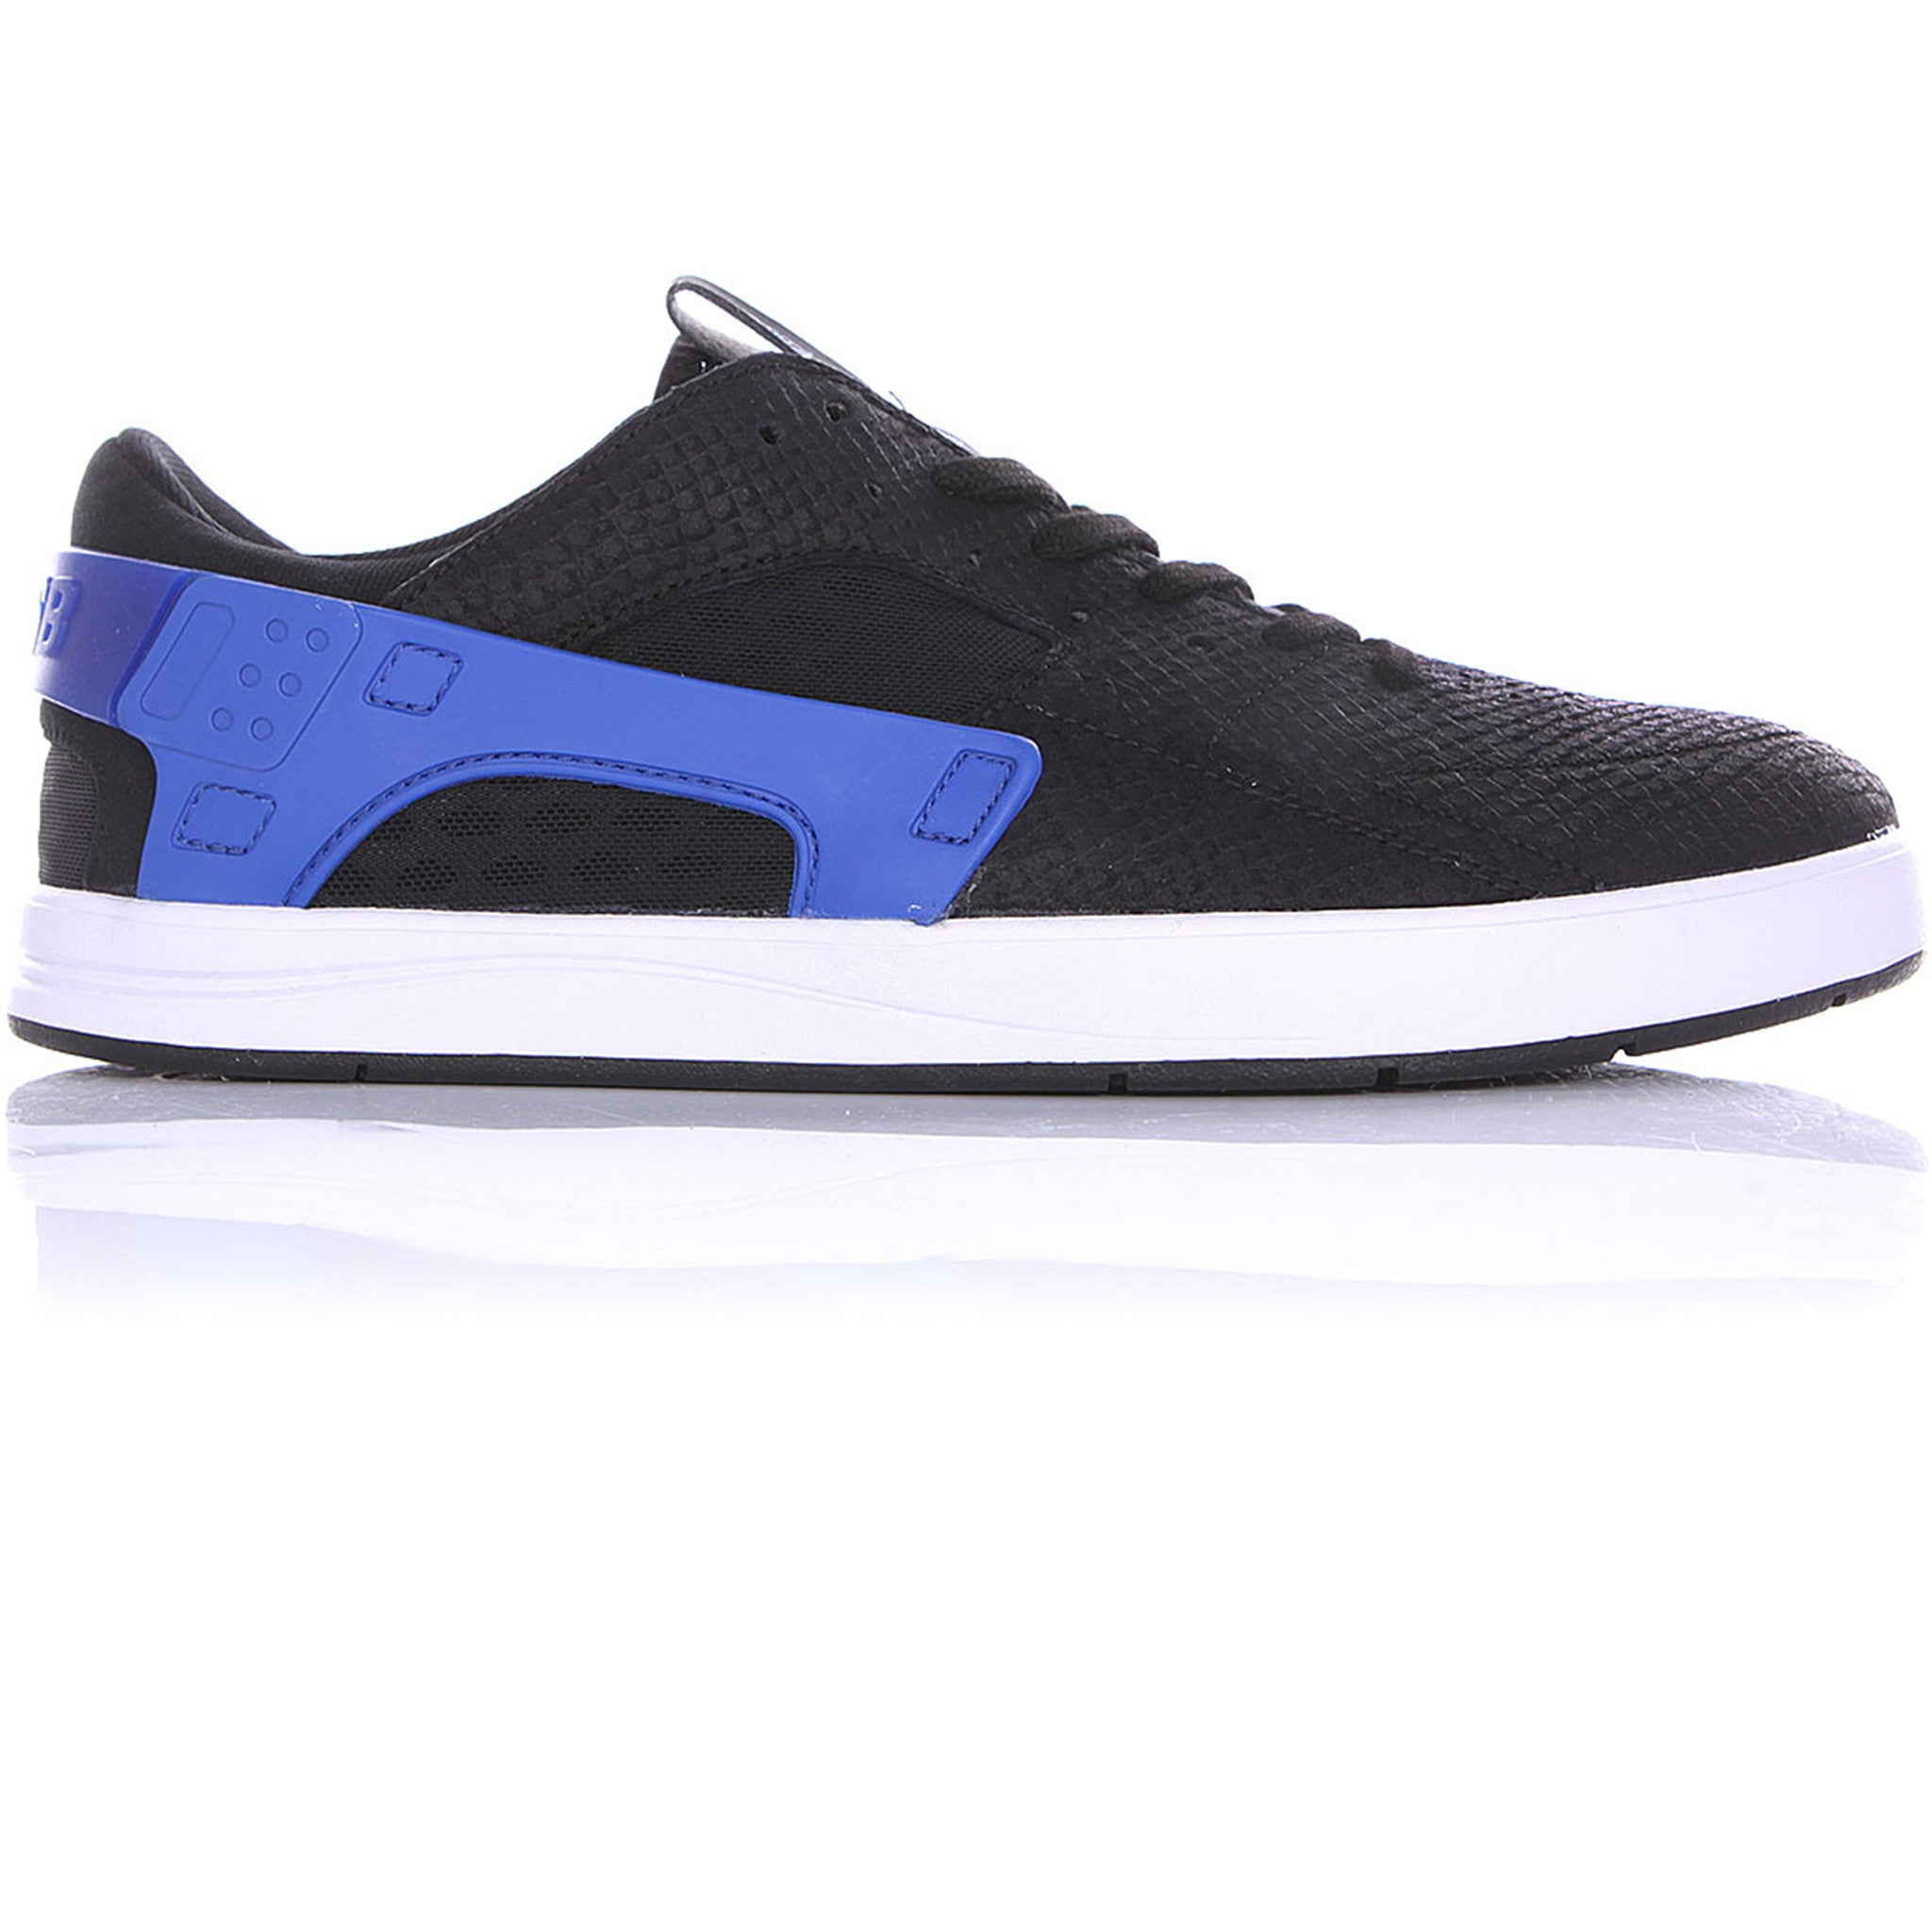 Eric Koston Huarache - Black/Black-Game Royal-White - Stoked Boardshop  - 1